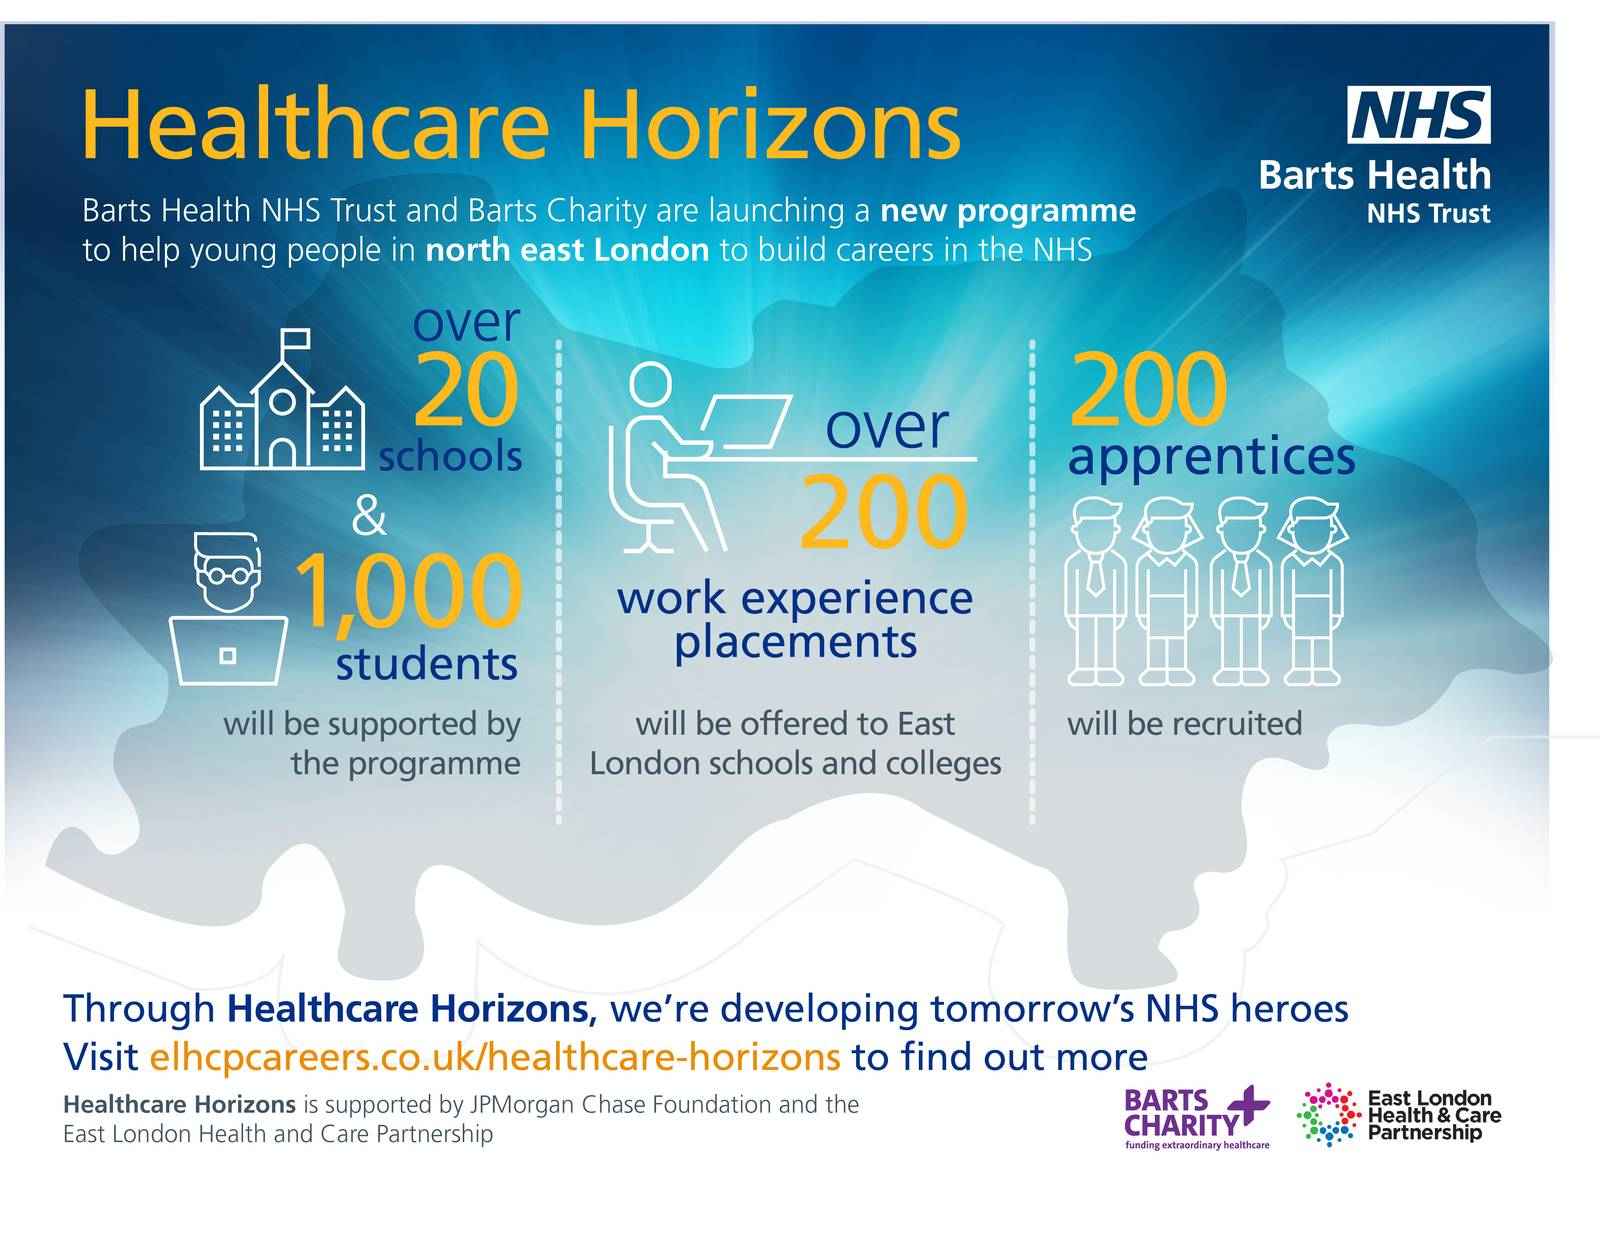 infographic for healthcare horizons